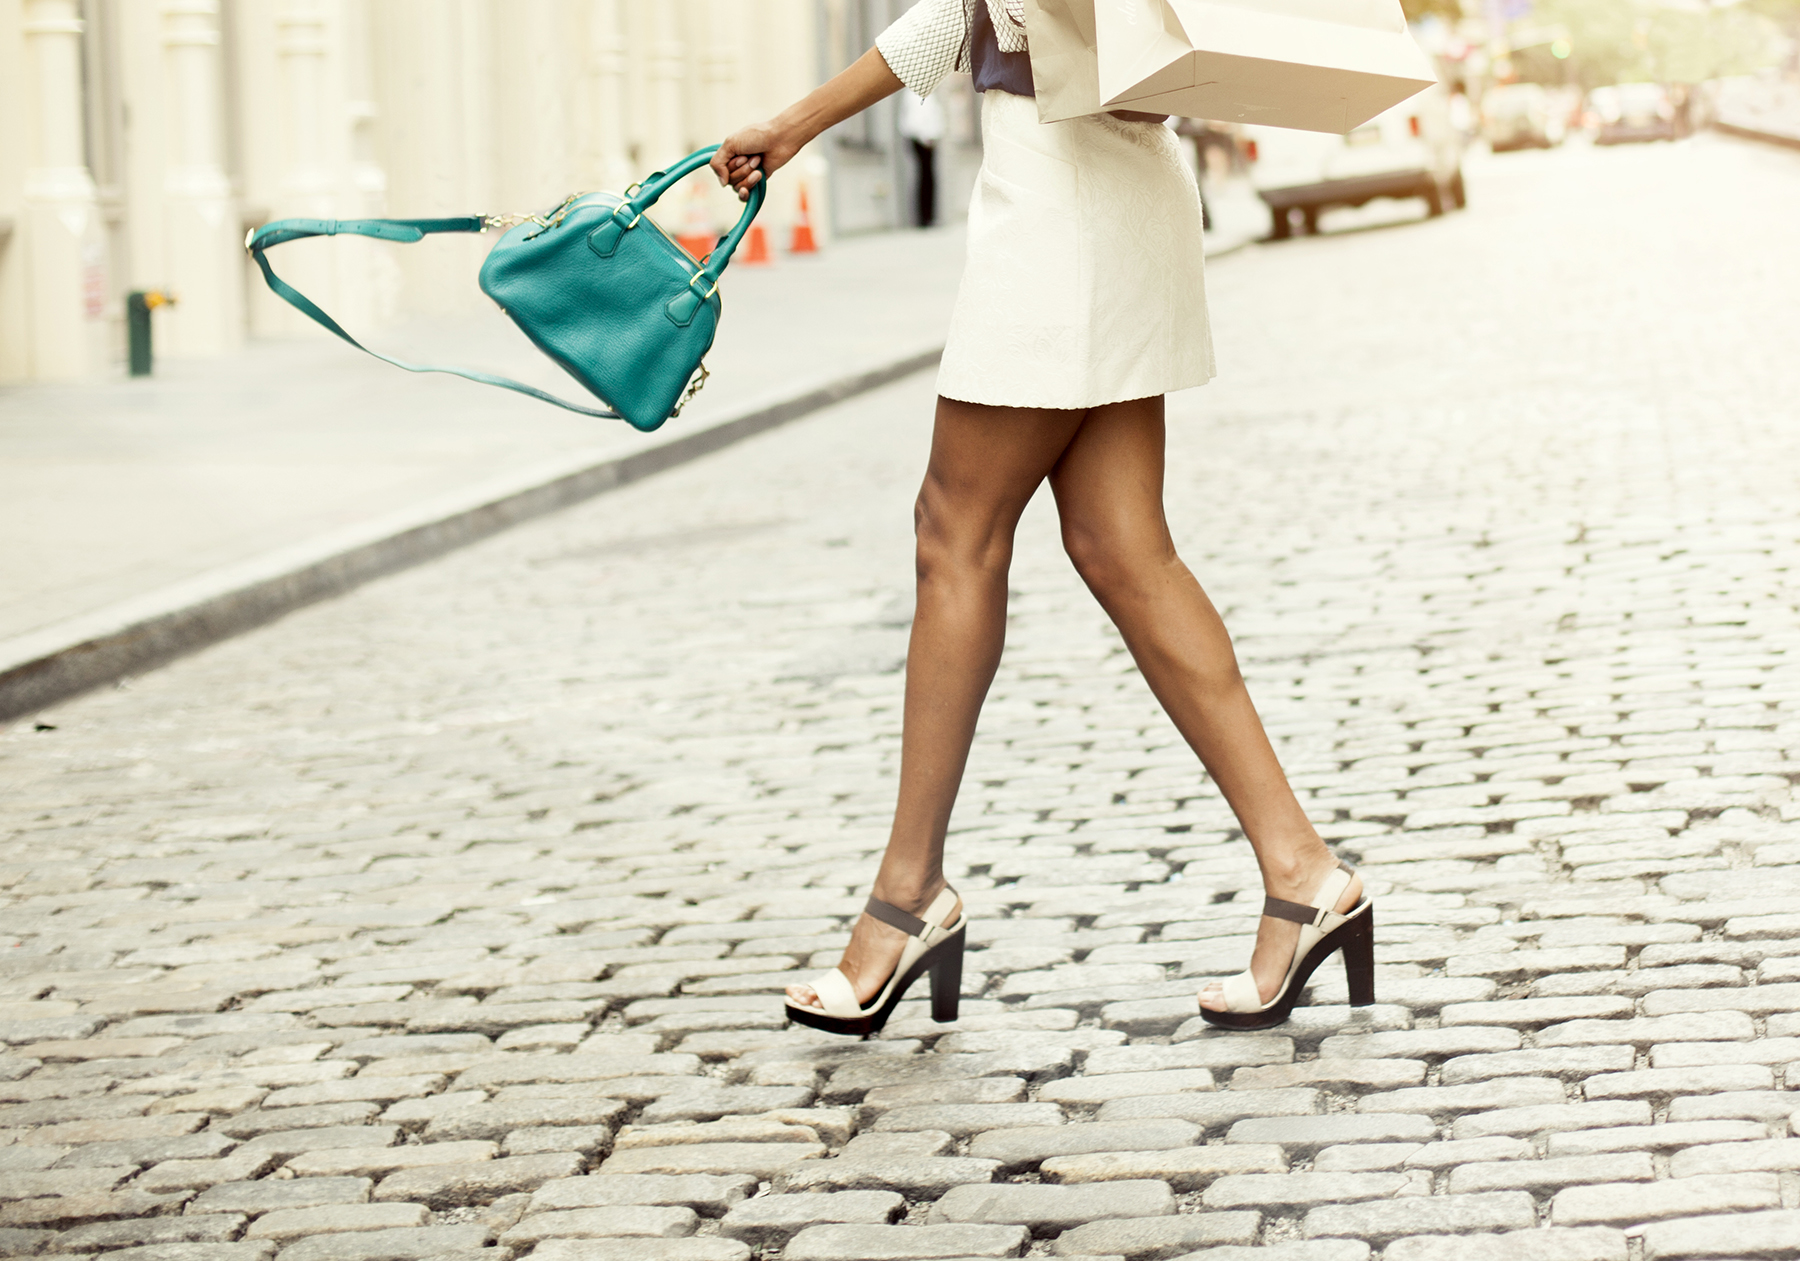 how-to-make-heels-stop-squeaking